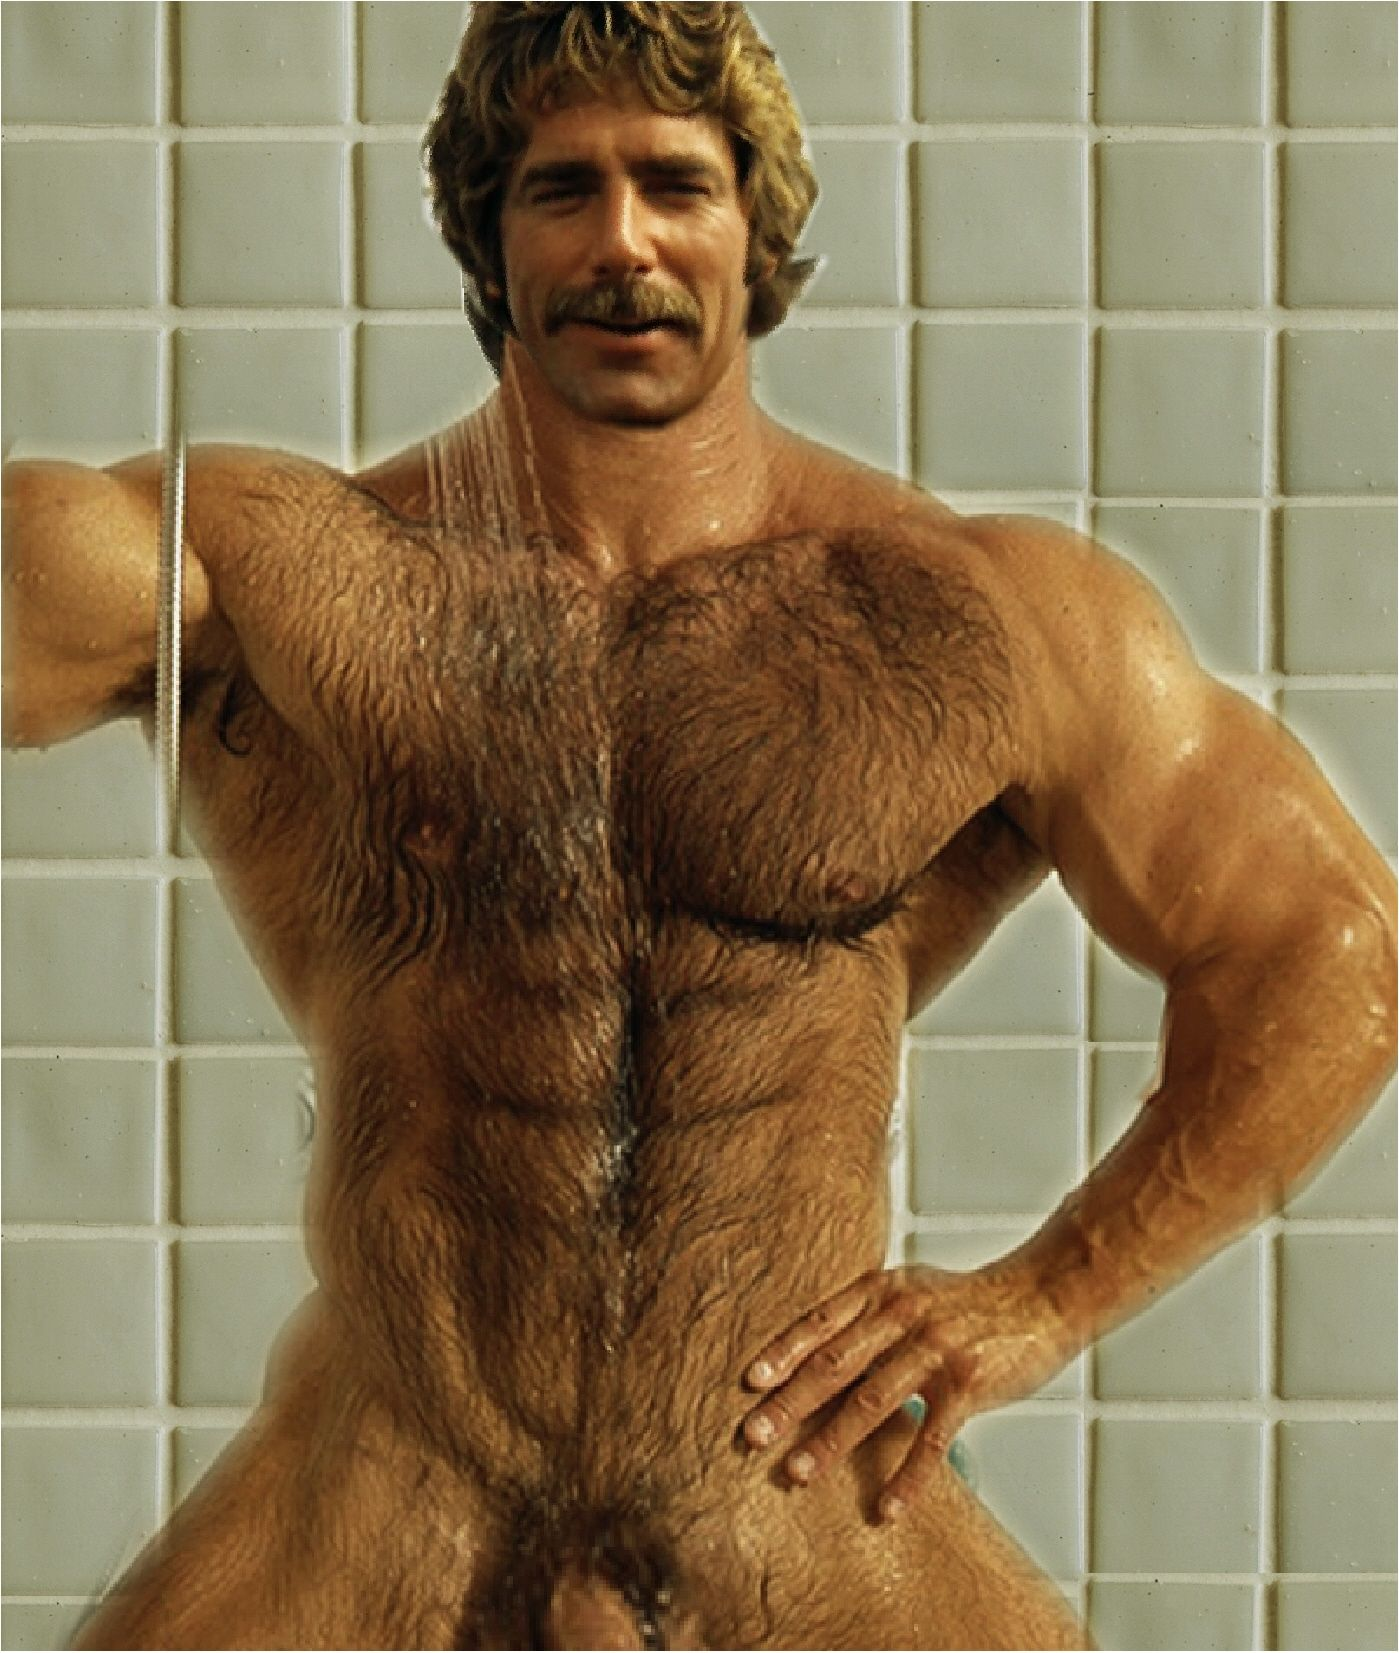 Pity, that hairy men in shower hope